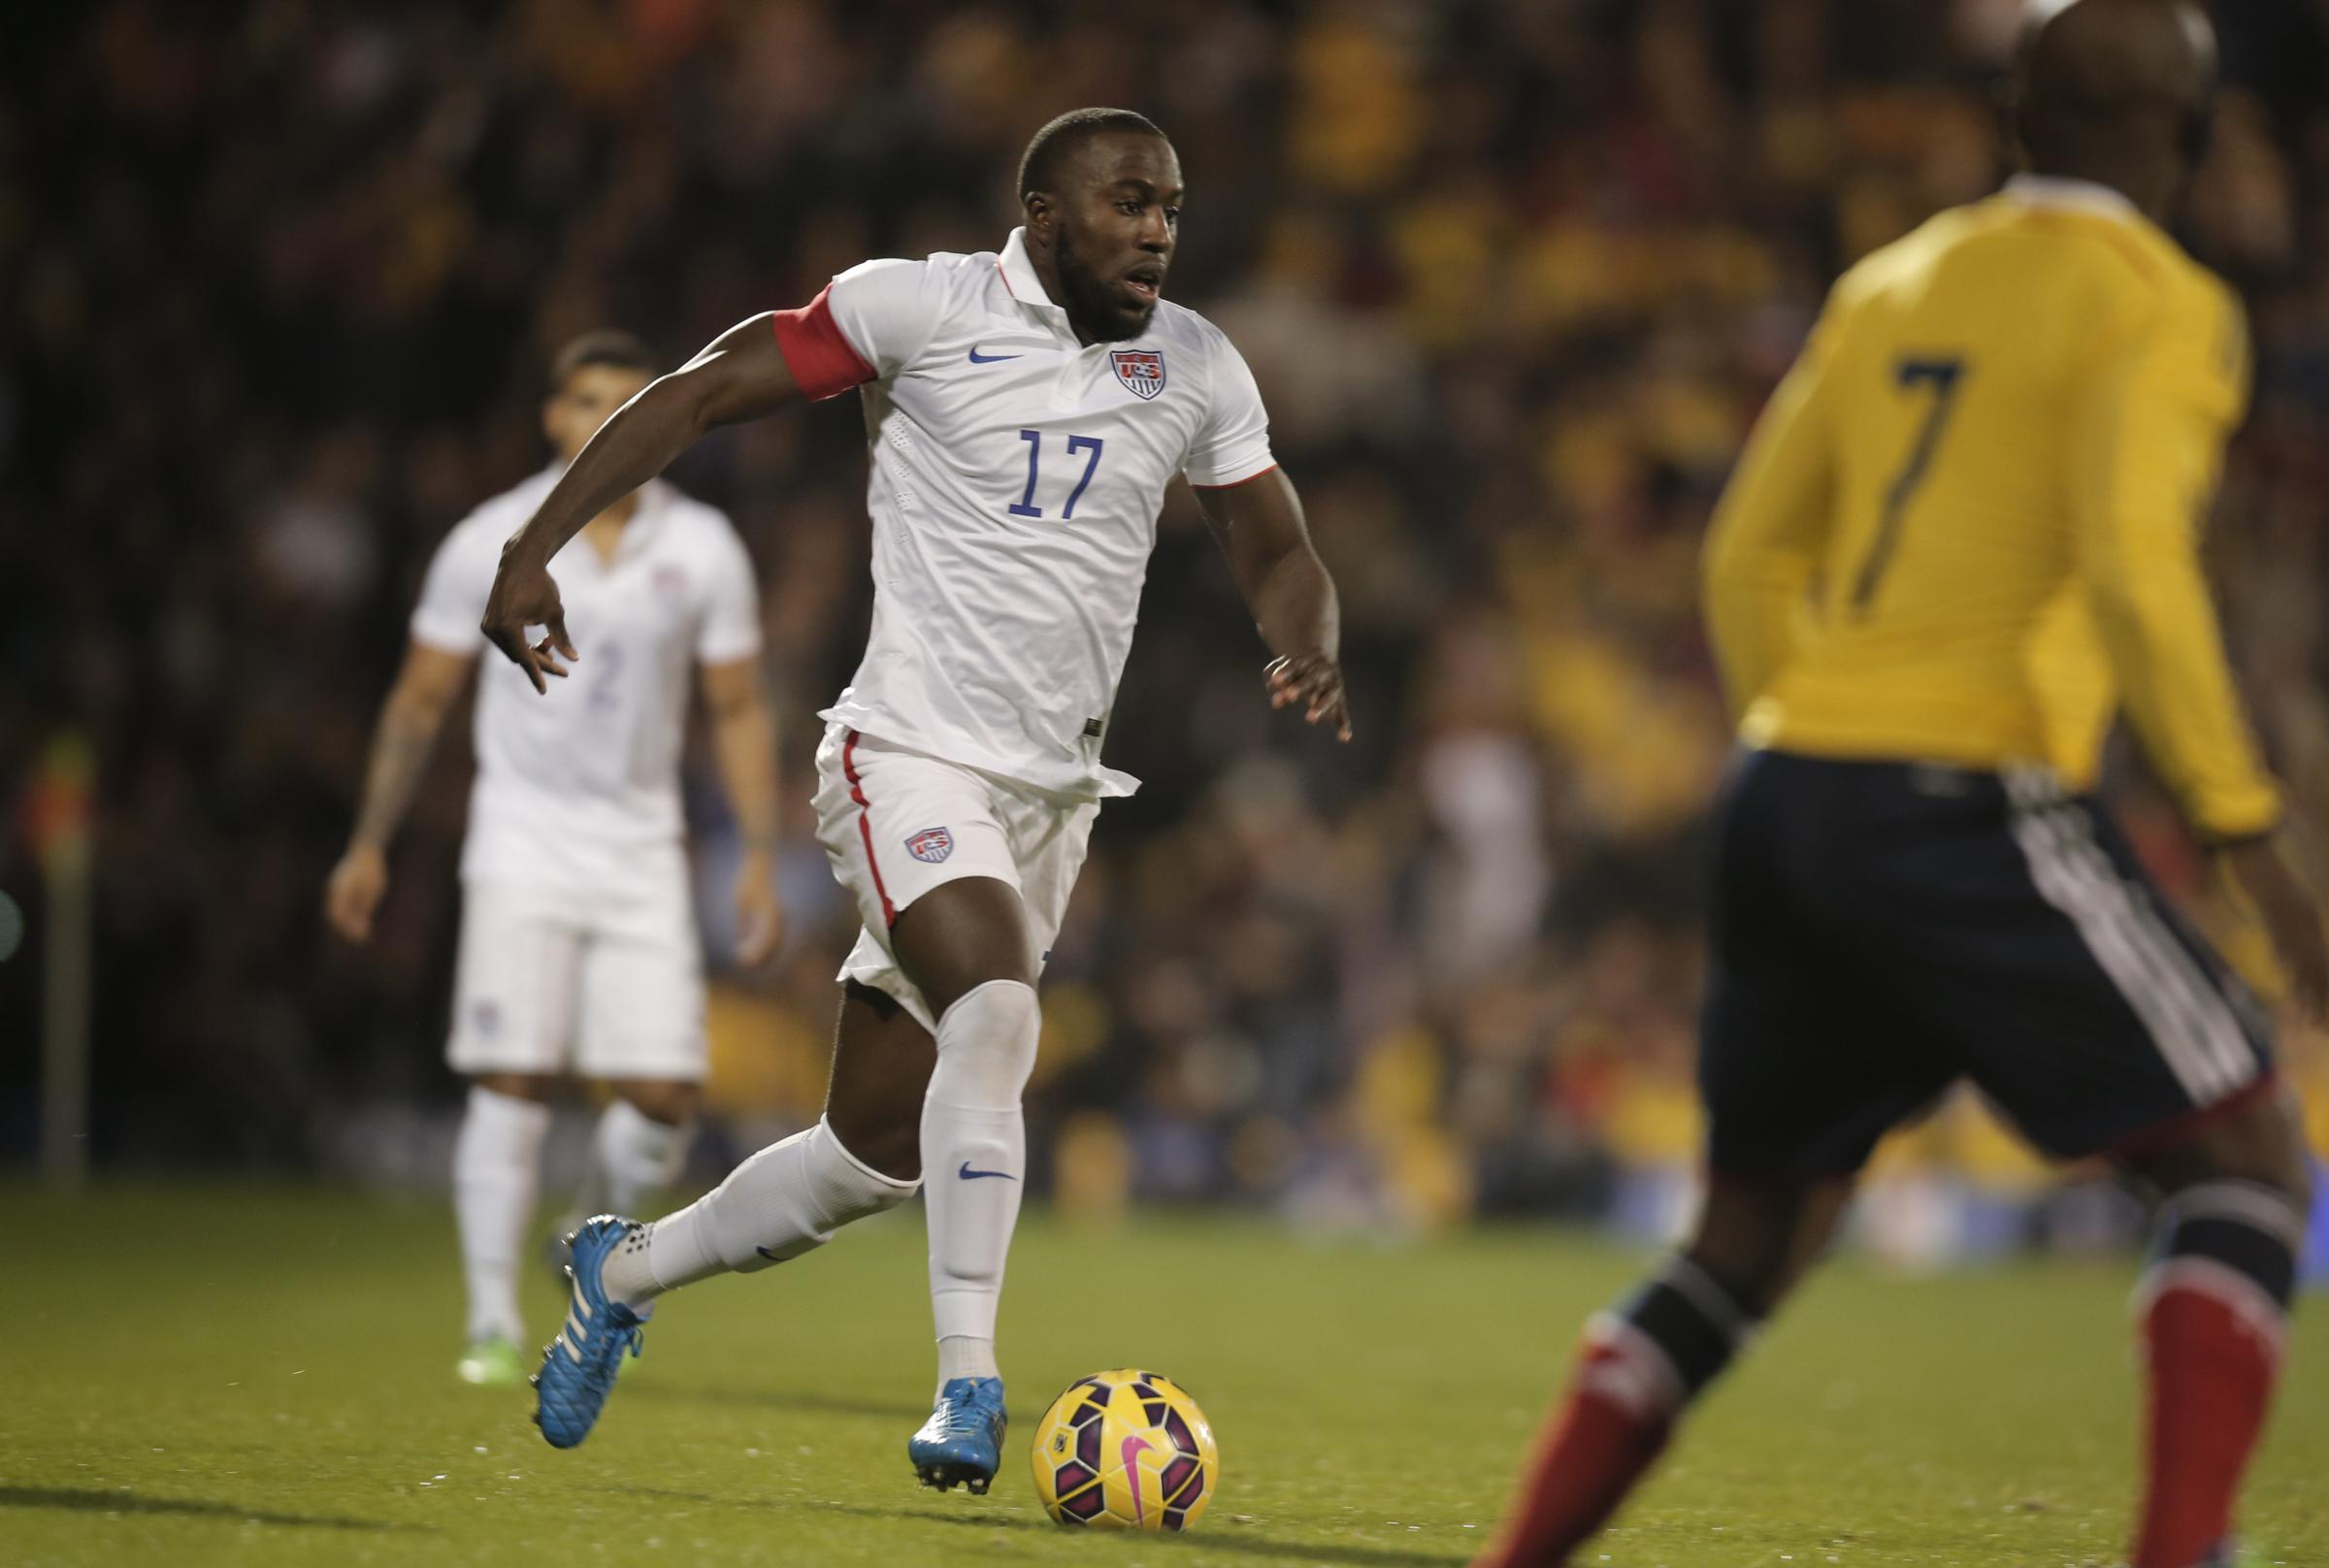 Wanted: Sunderland's USA captain Jozy Altidore is being courted by clubs outside the Premier League